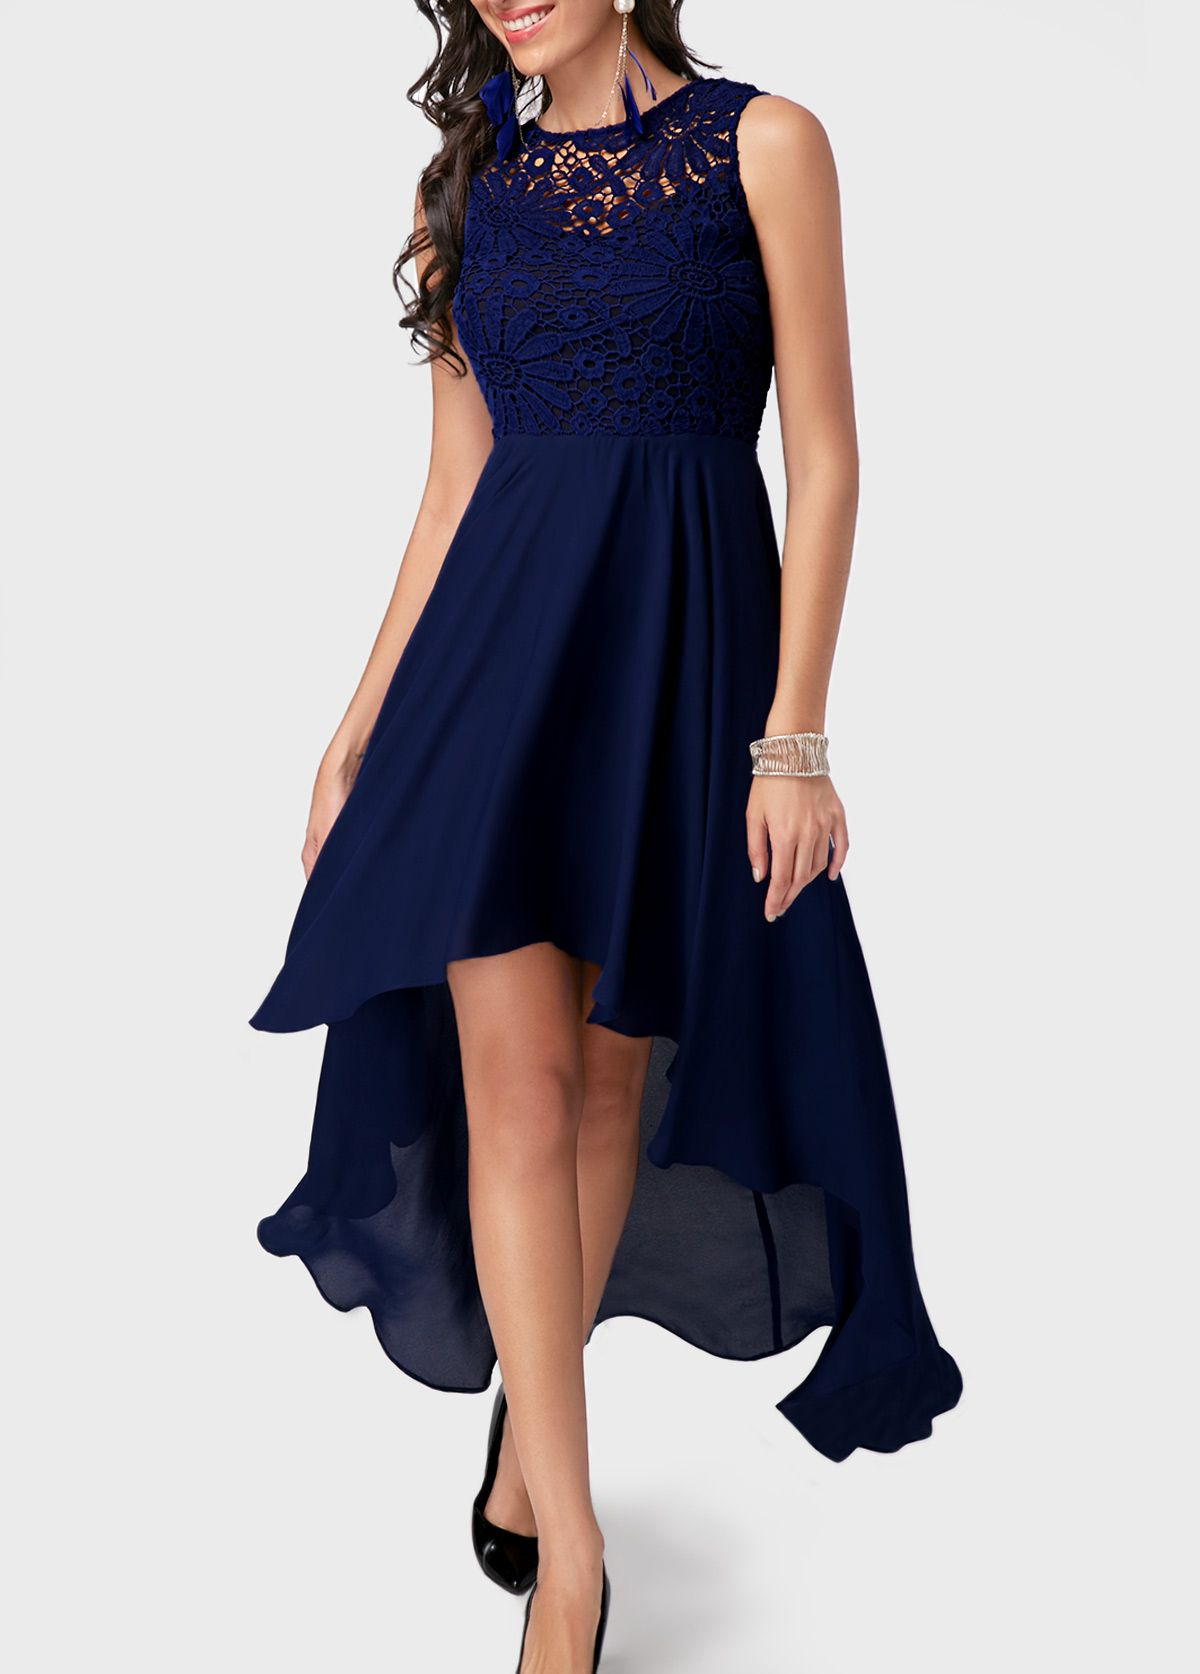 Lace Panel High Low Navy Blue Dress on sale only US 38.21 now 9fee80238e98